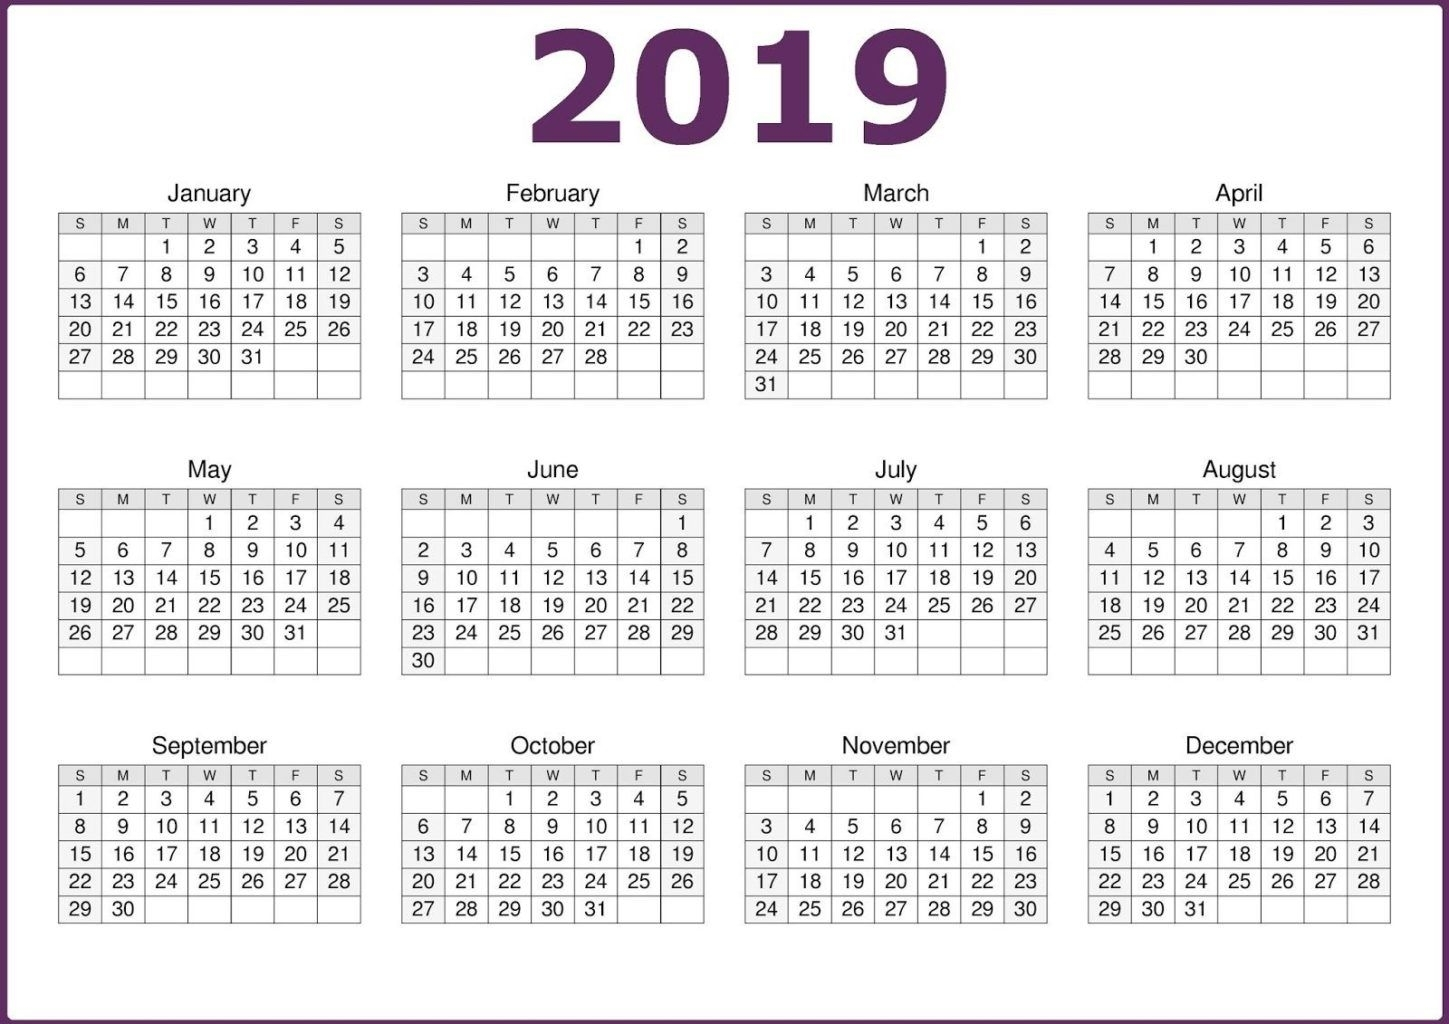 2019 One Page Calendar Printable | 2019 Calendars | Calendar 2019 intended for 12 Month One Page Calendar